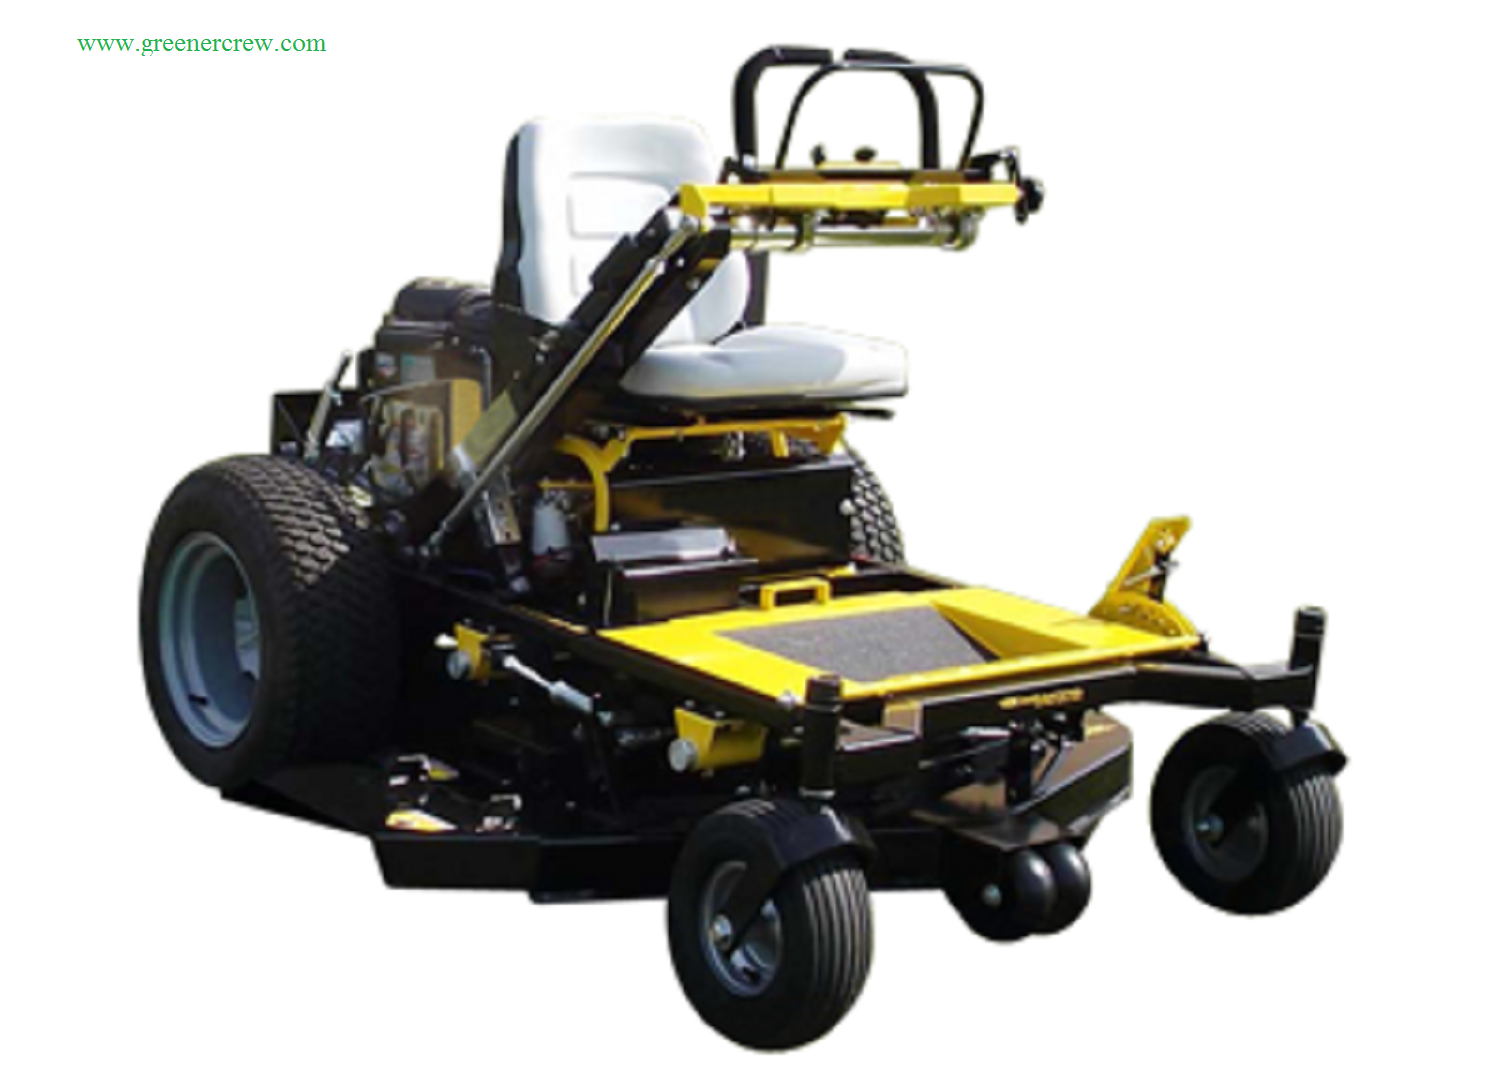 52quot lawn mower converts from a riding mower to a walk